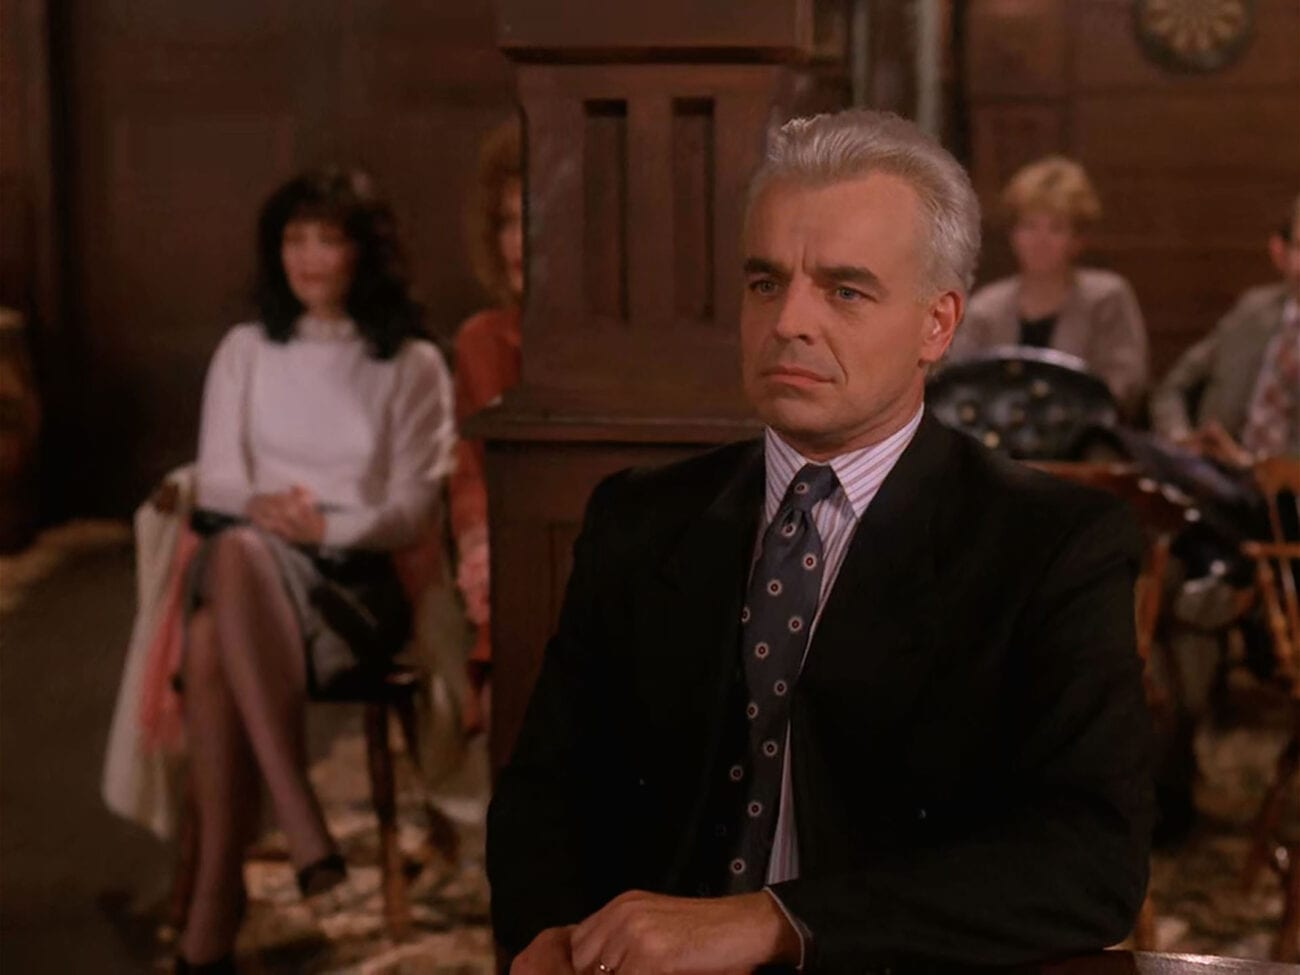 Leland Palmer sits calmly at The Roadhouse as he awaits the verdict on his bail hearing